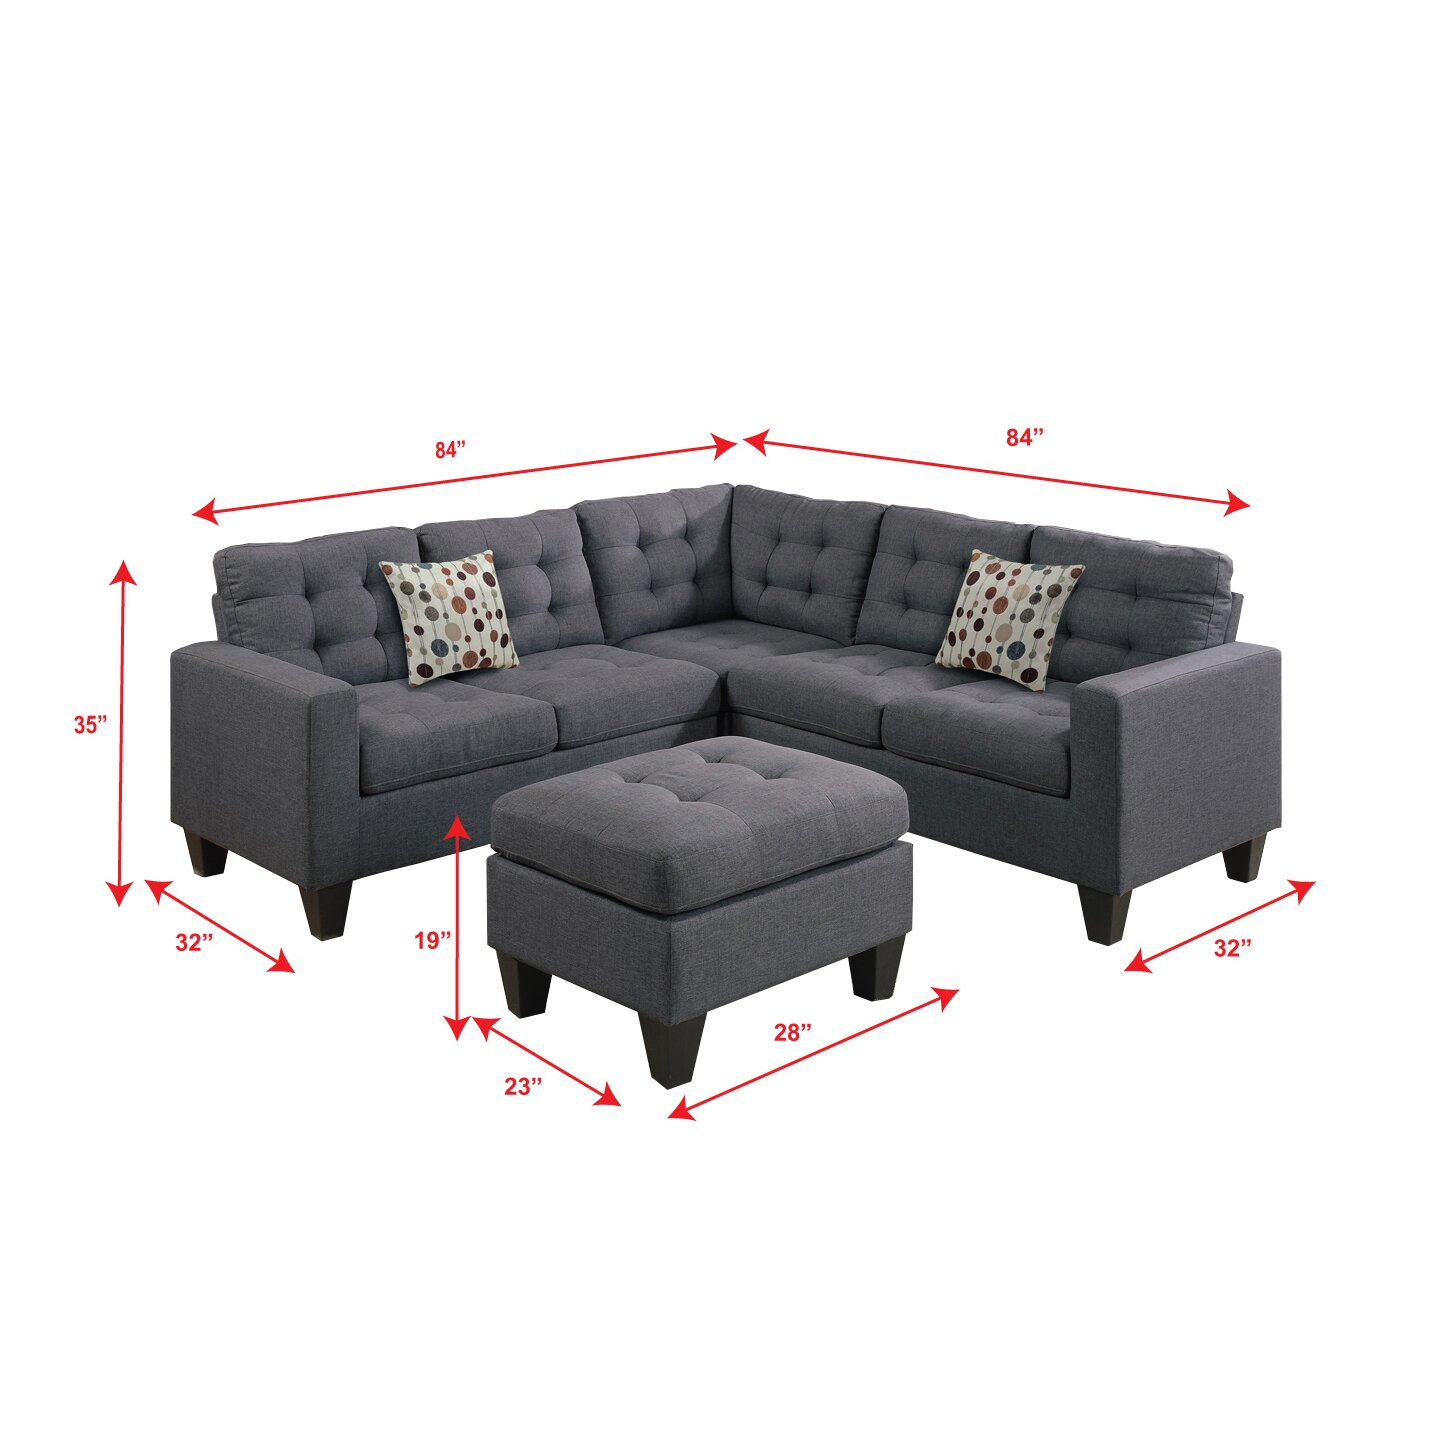 Norton Furniture Reviews